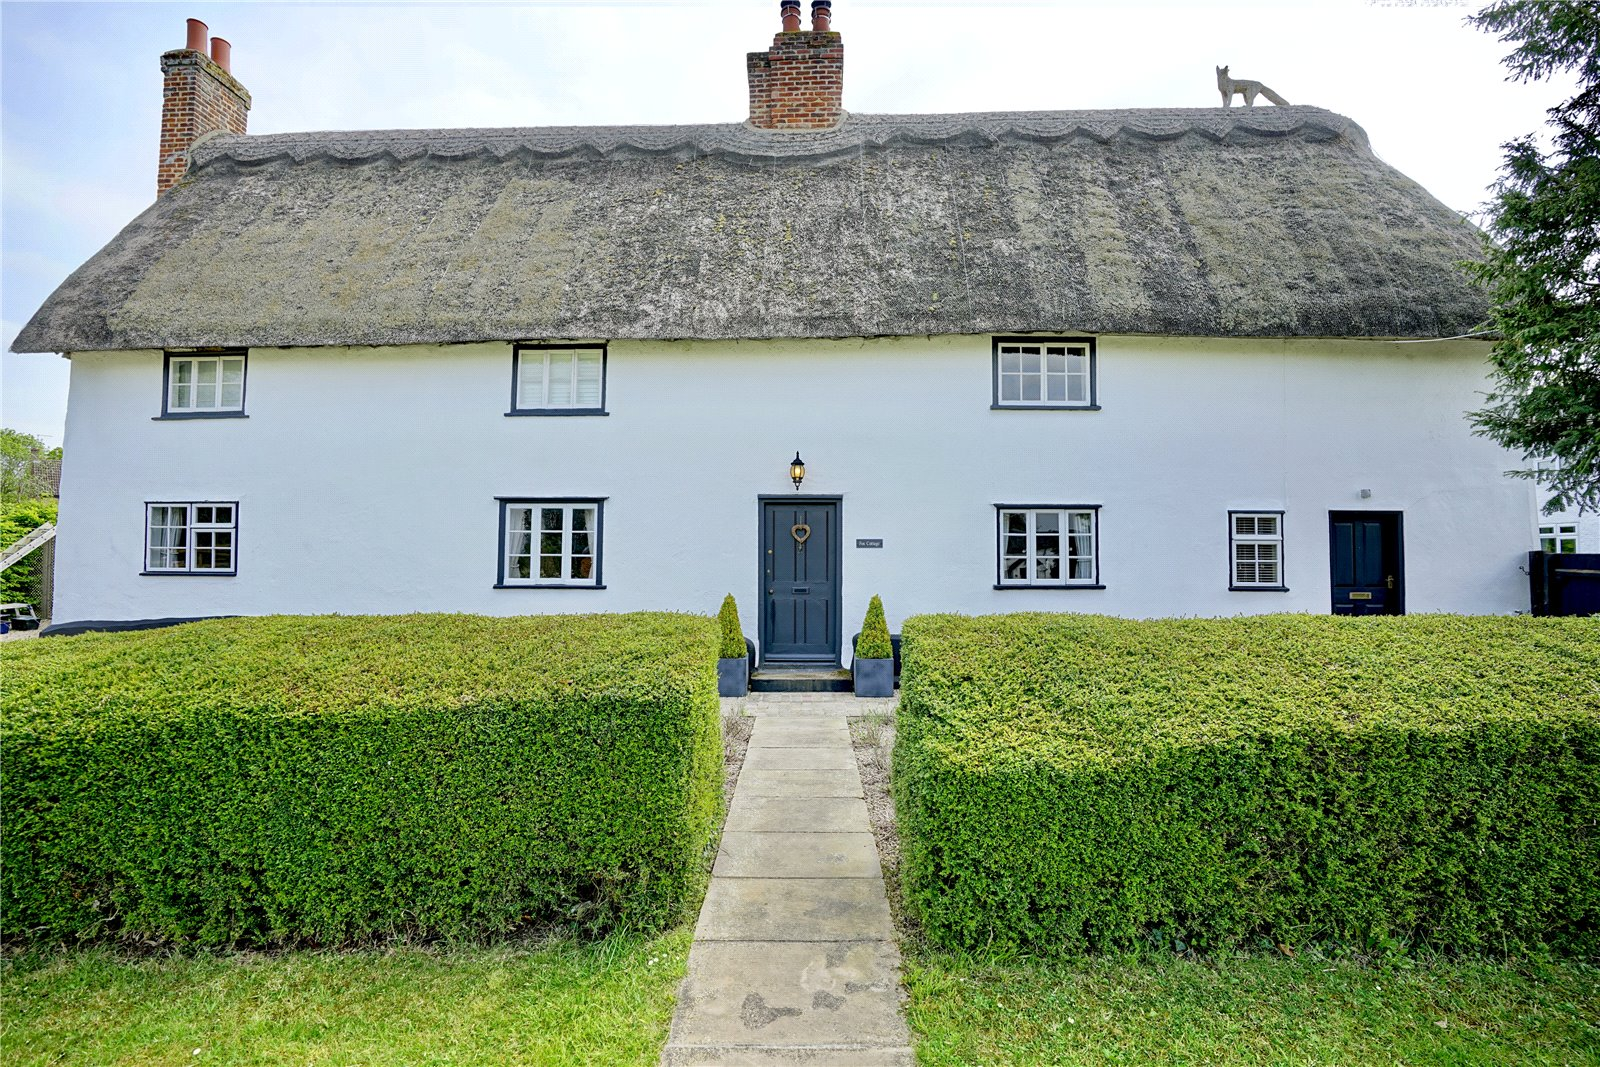 3 bed house for sale in Fox Street, Great Gransden, SG19